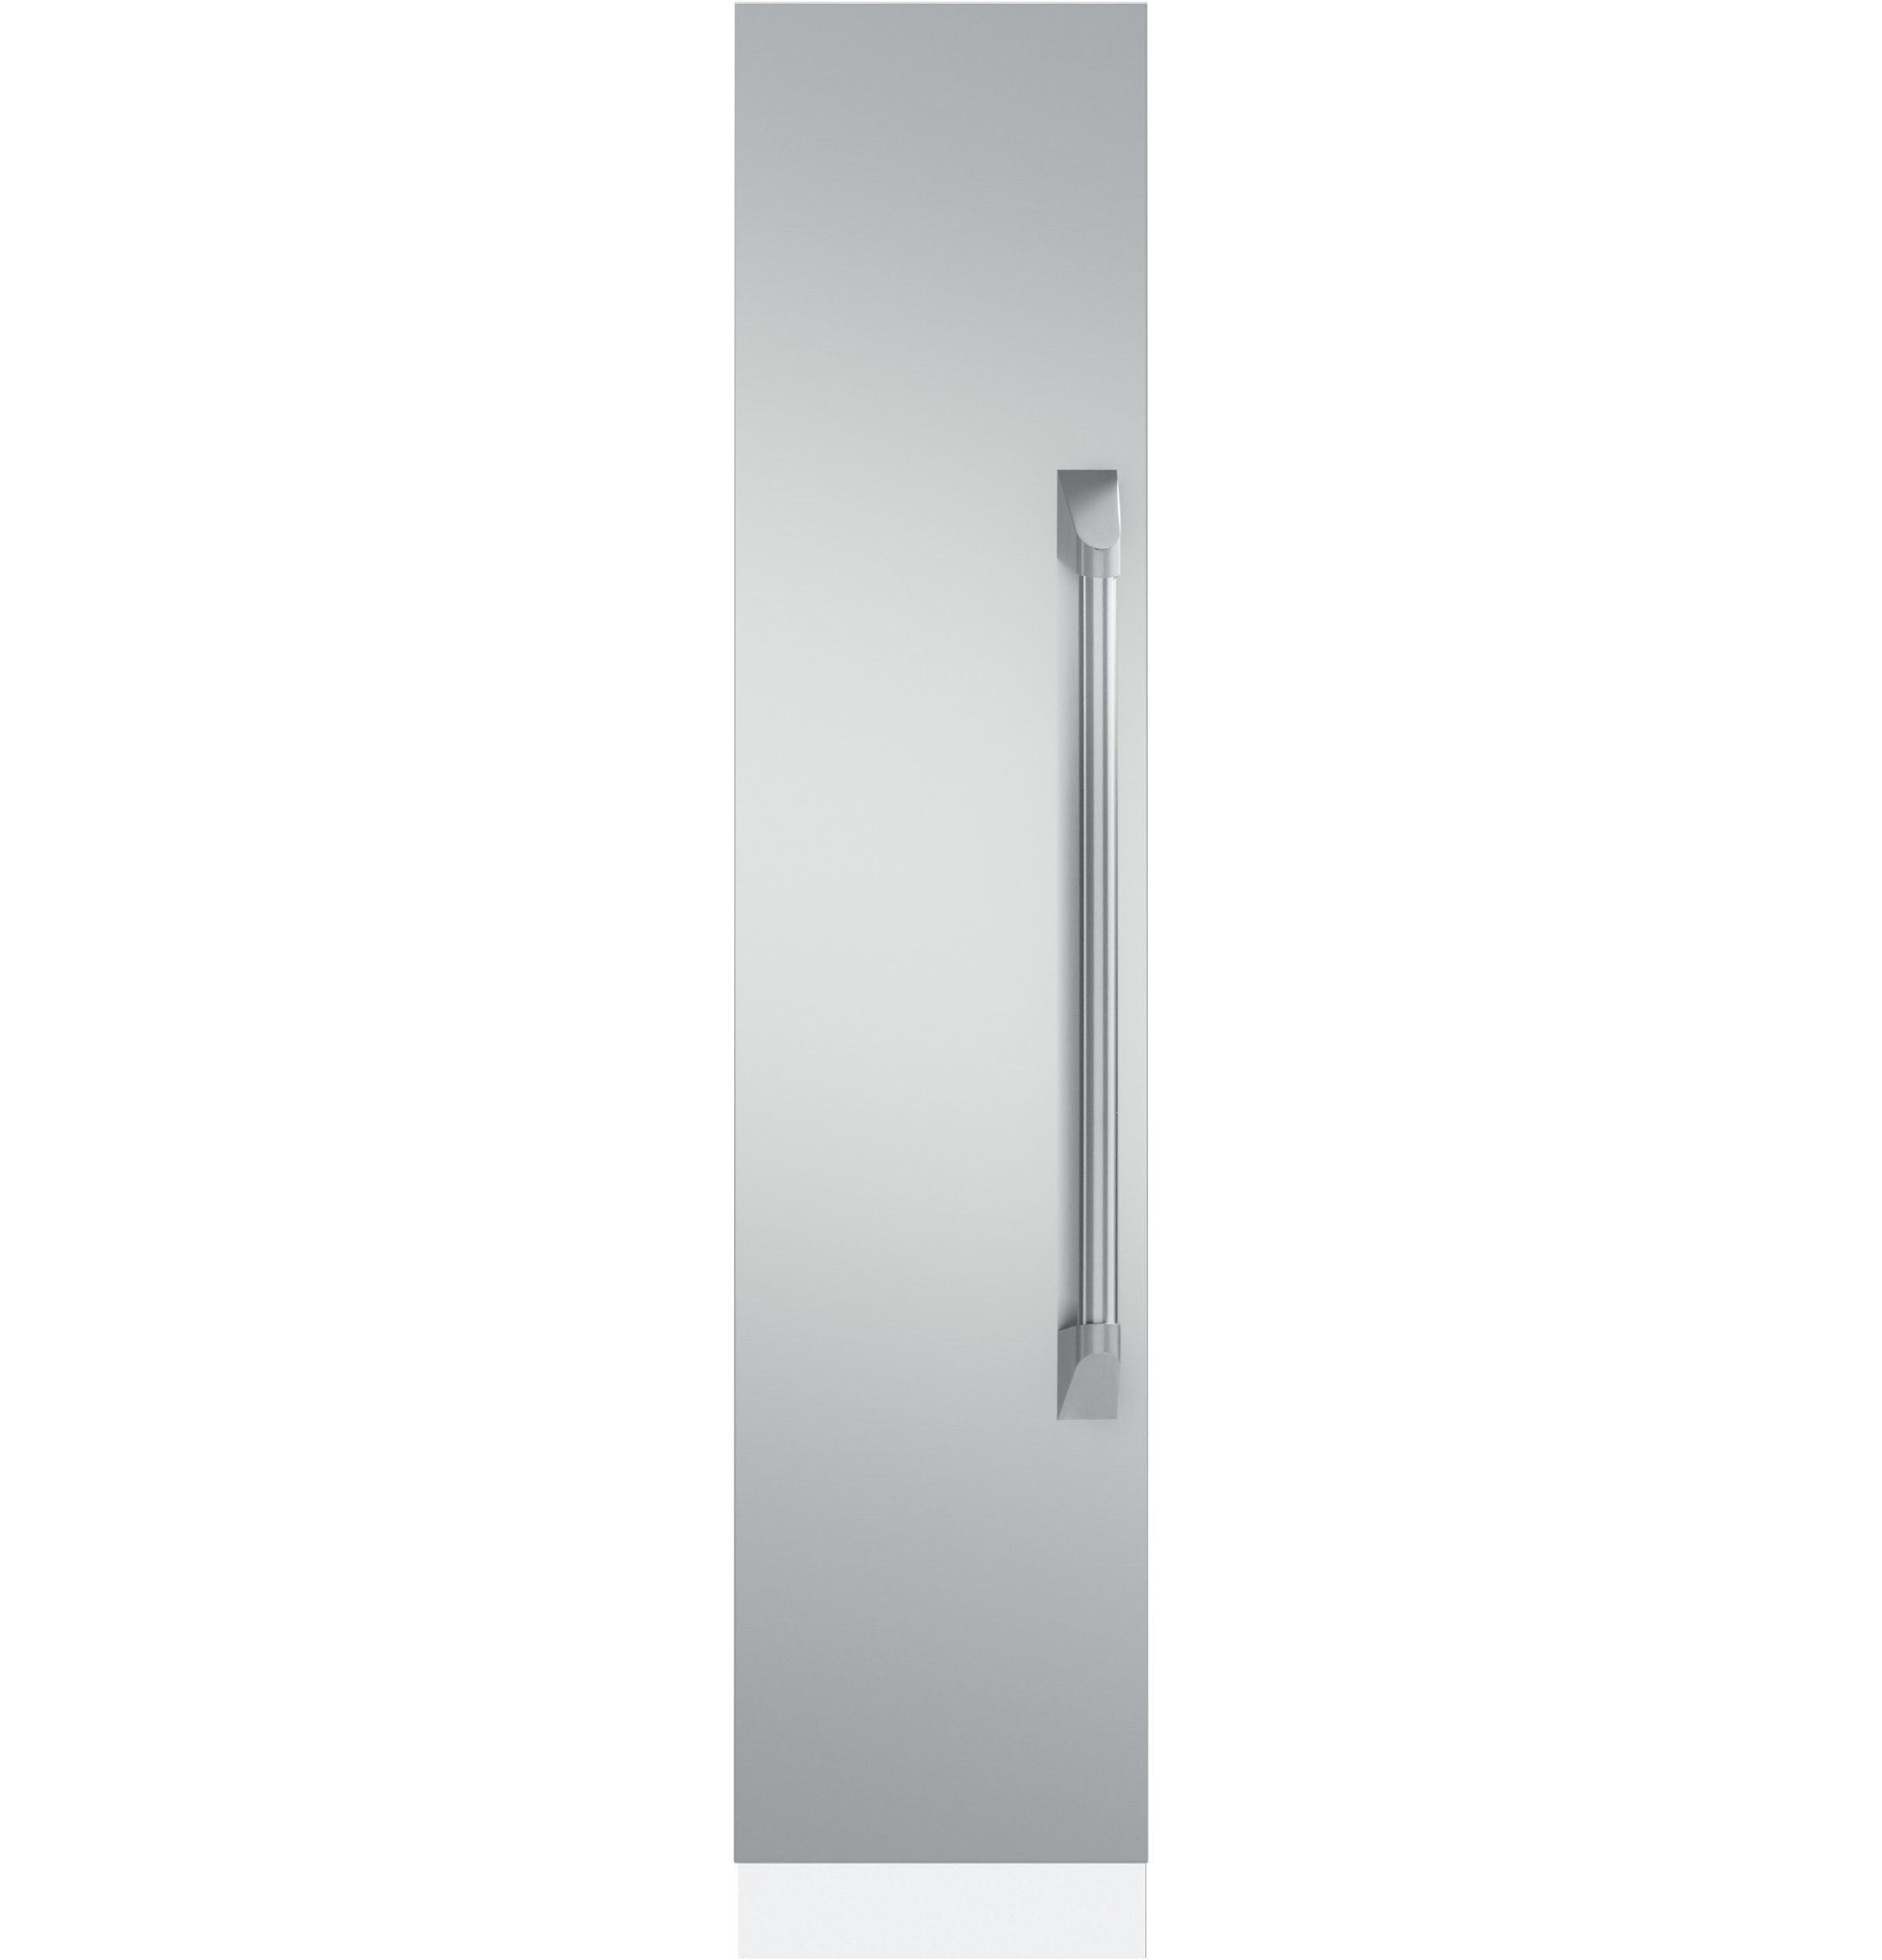 "Monogram 18"" Fully Integrated Freezer- Pro Stainless Steel Door Panel Kit"